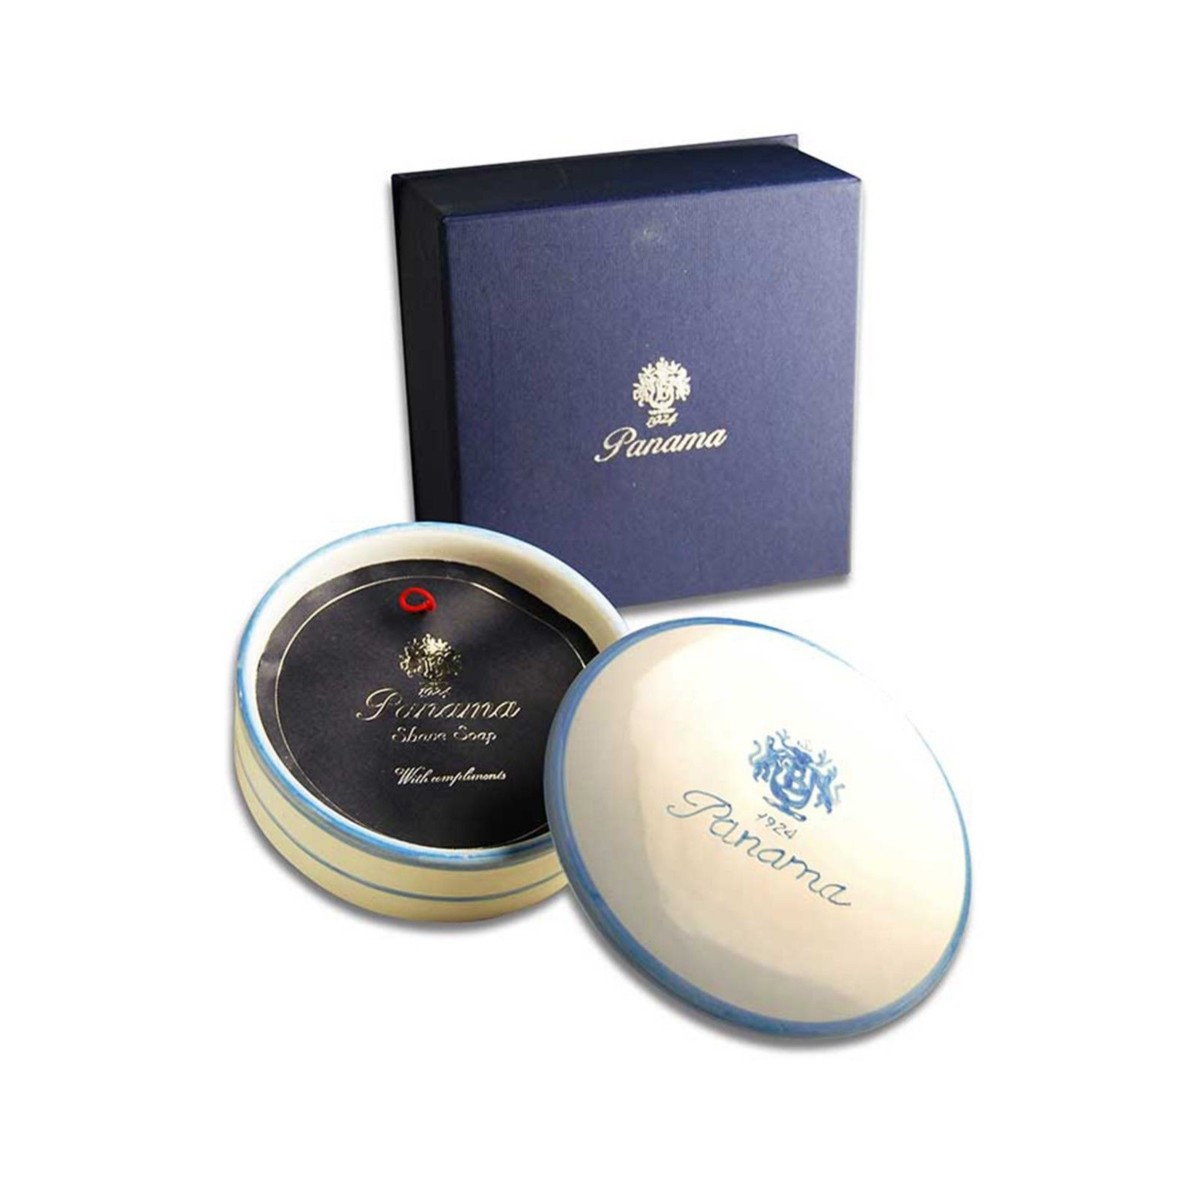 Panama 1924 Boellis COFFRET SHAVE SOAP 250gr Made In Italy